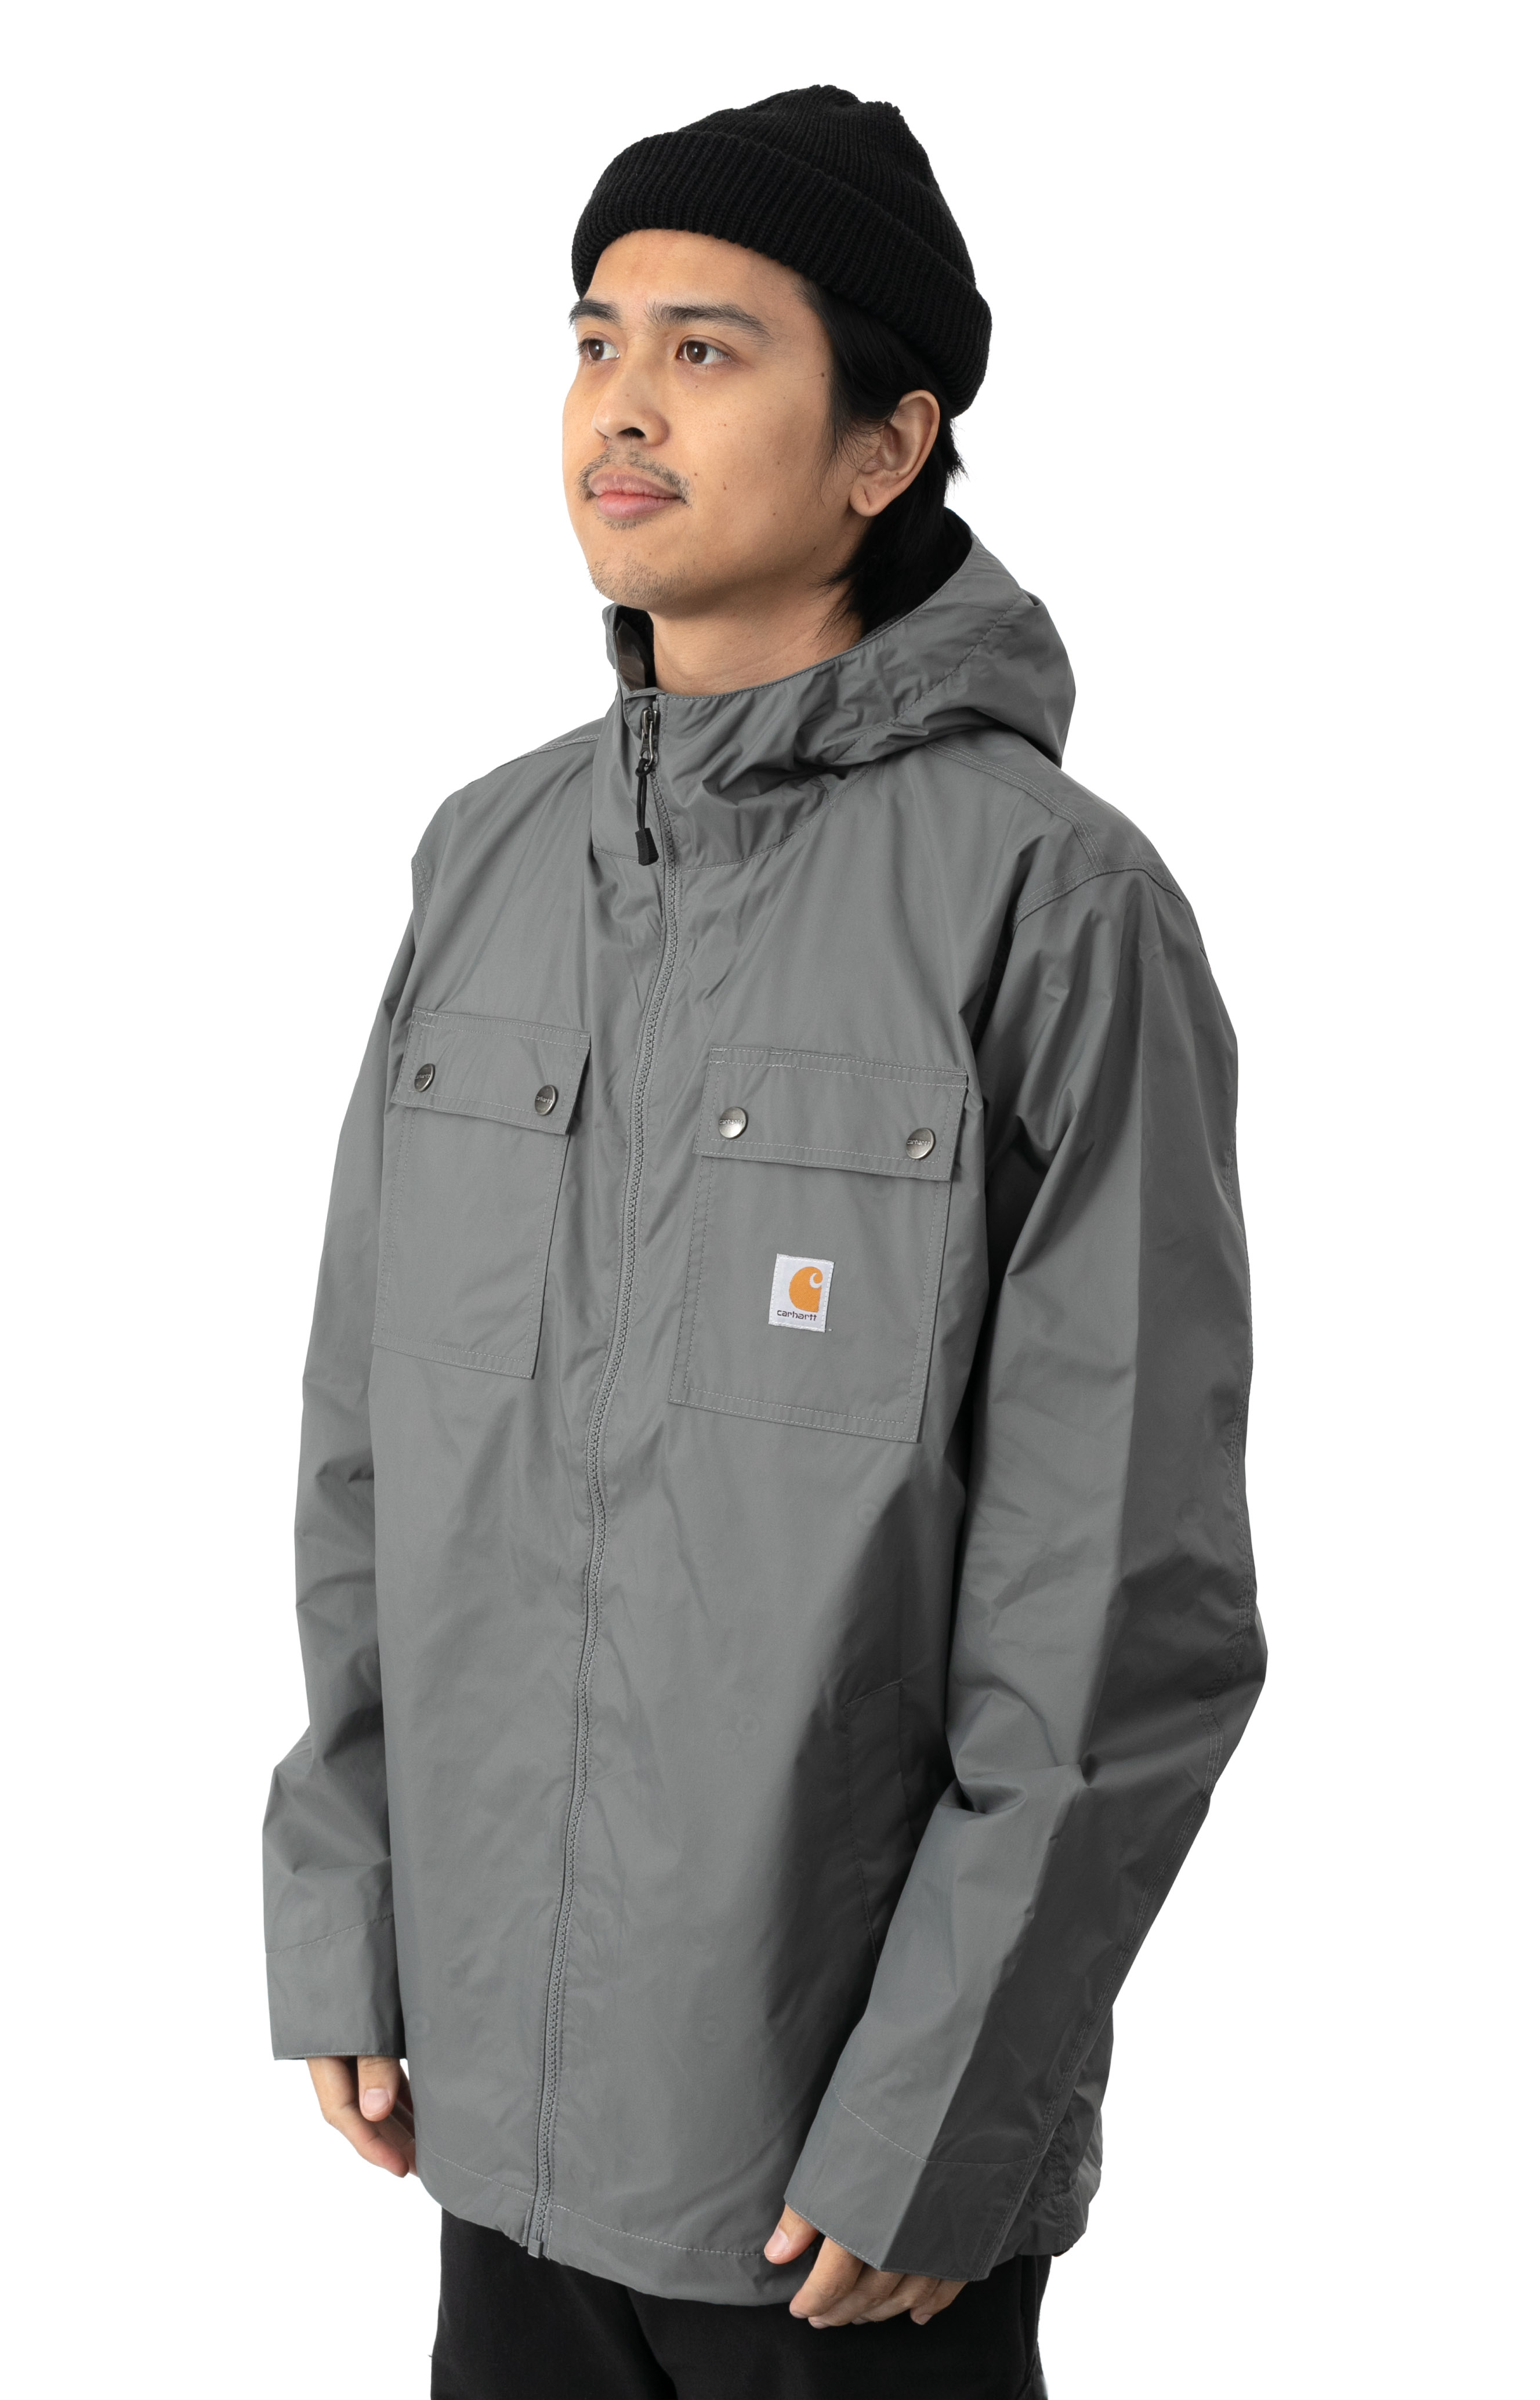 (100247) Rockford Jacket - Steel  2